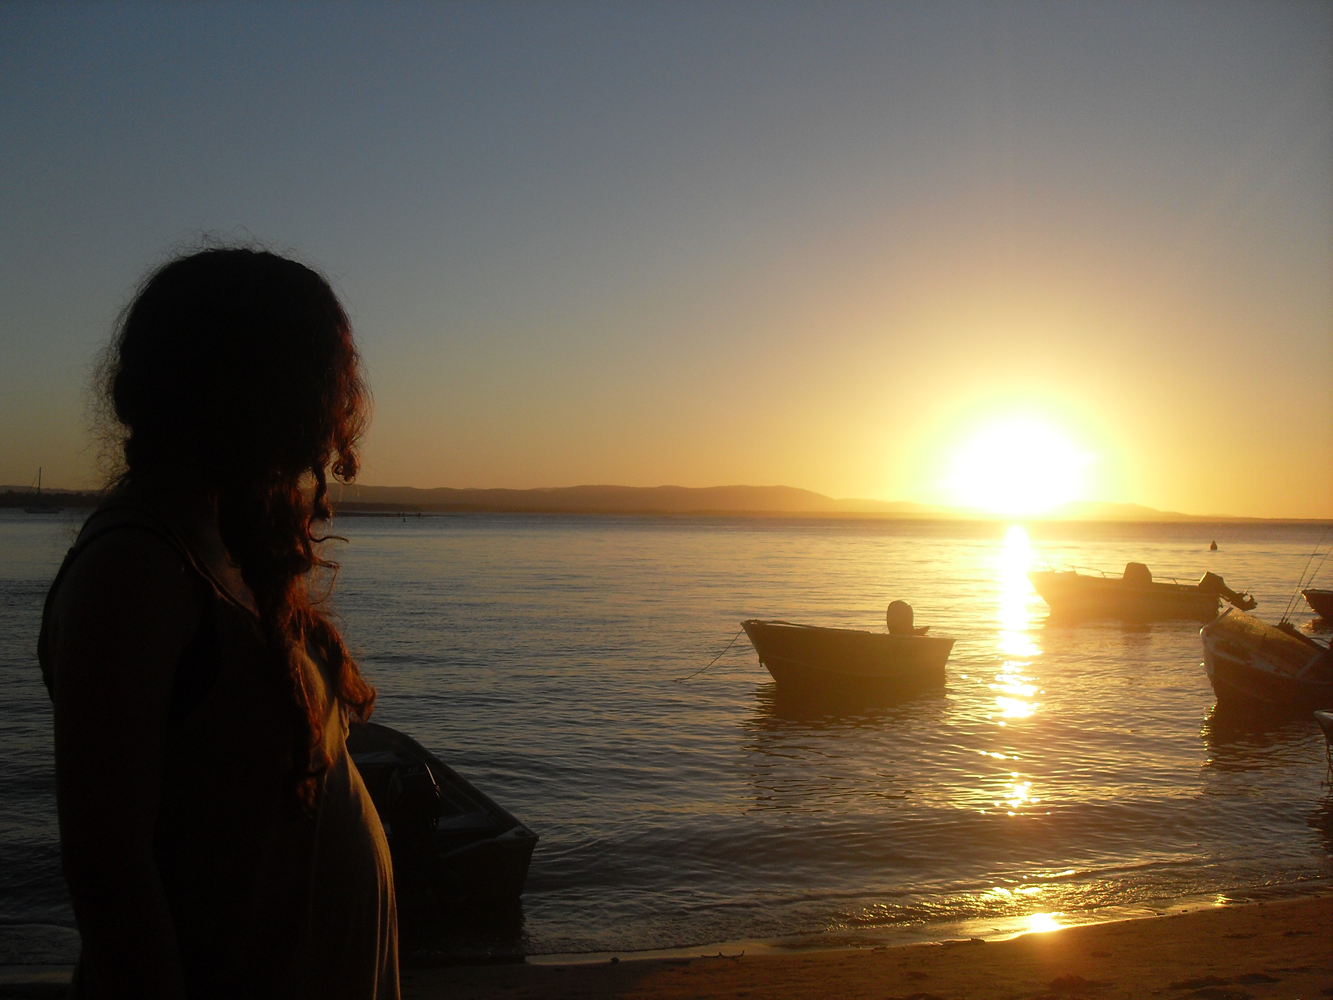 Sunsets and Boats, Beach, Boats, Girl, Nature, HQ Photo